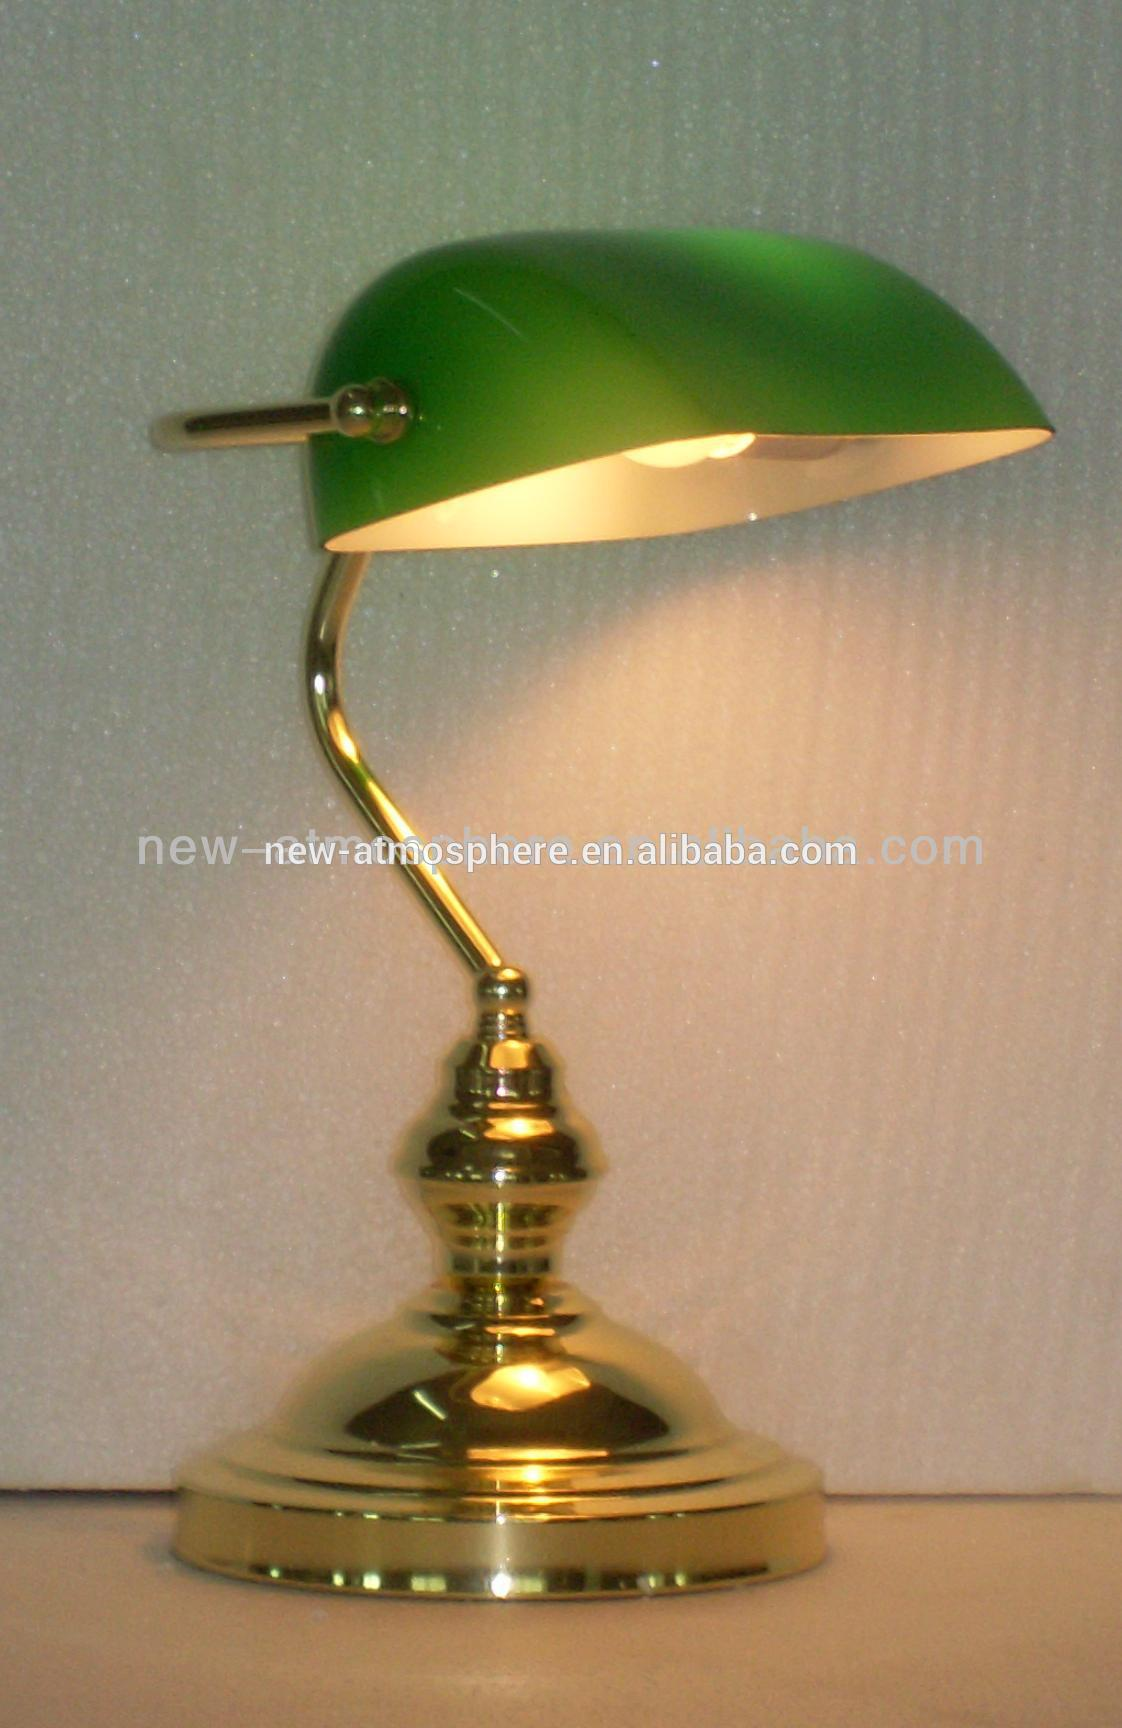 Design589589 Bankers Desk Lamps 1000 ideas about Bankers Desk – Desk Lamp Green Shade